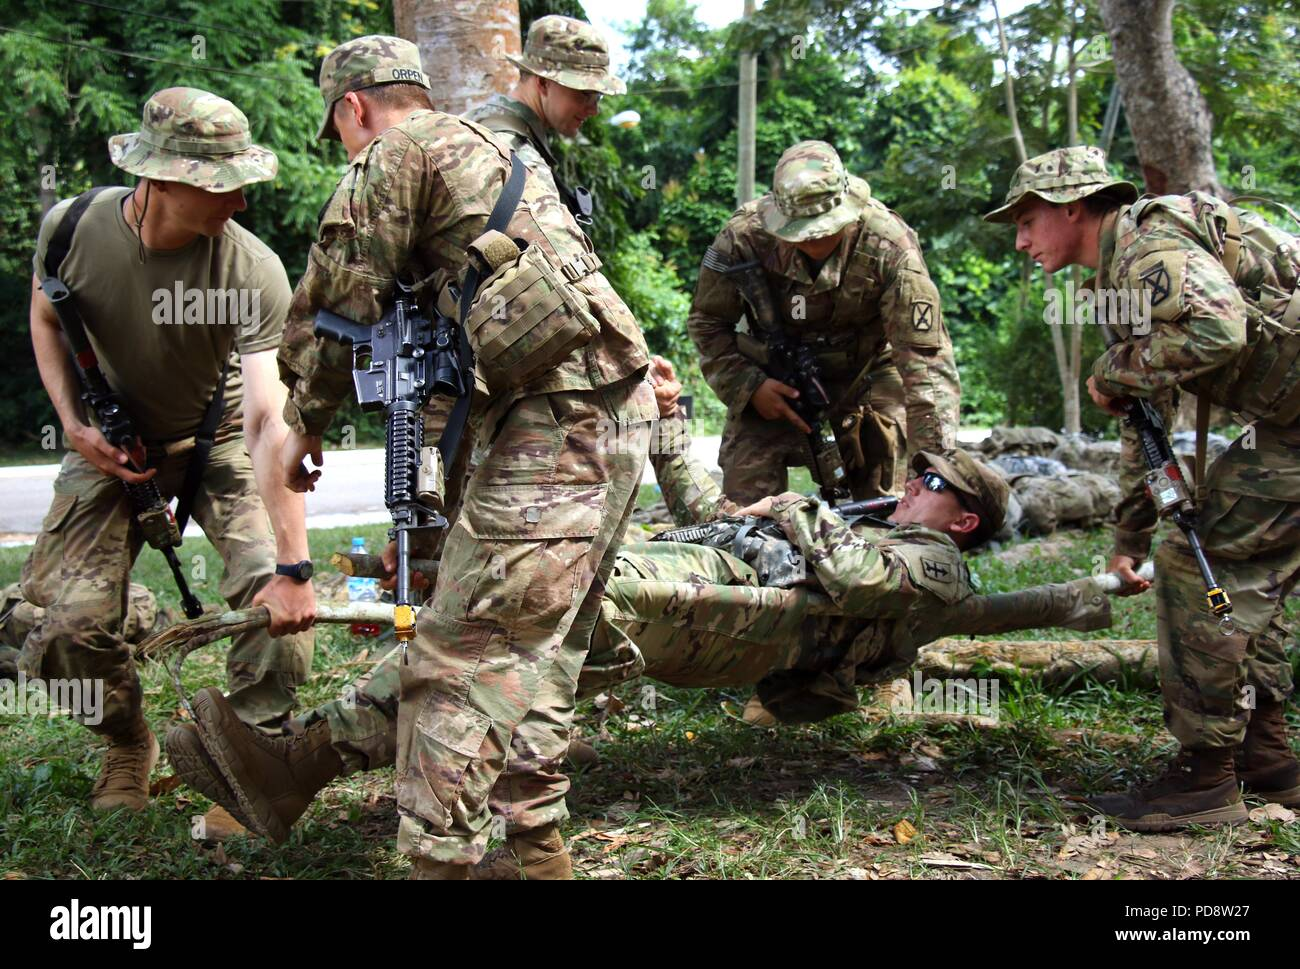 U.S. Army Soldiers conduct tactical casualty evacuation training during Jungle Warfare School at Achiase Military Base, Akim Achiase, Ghana, August 6, 2018, August 6, 2018. The Jungle Warfare School is a series of situational training exercises designed to train participants in counter-insurgency and internal security operations. (U.S. Army photo by Staff Sgt. Brandon Ames). () - Stock Image